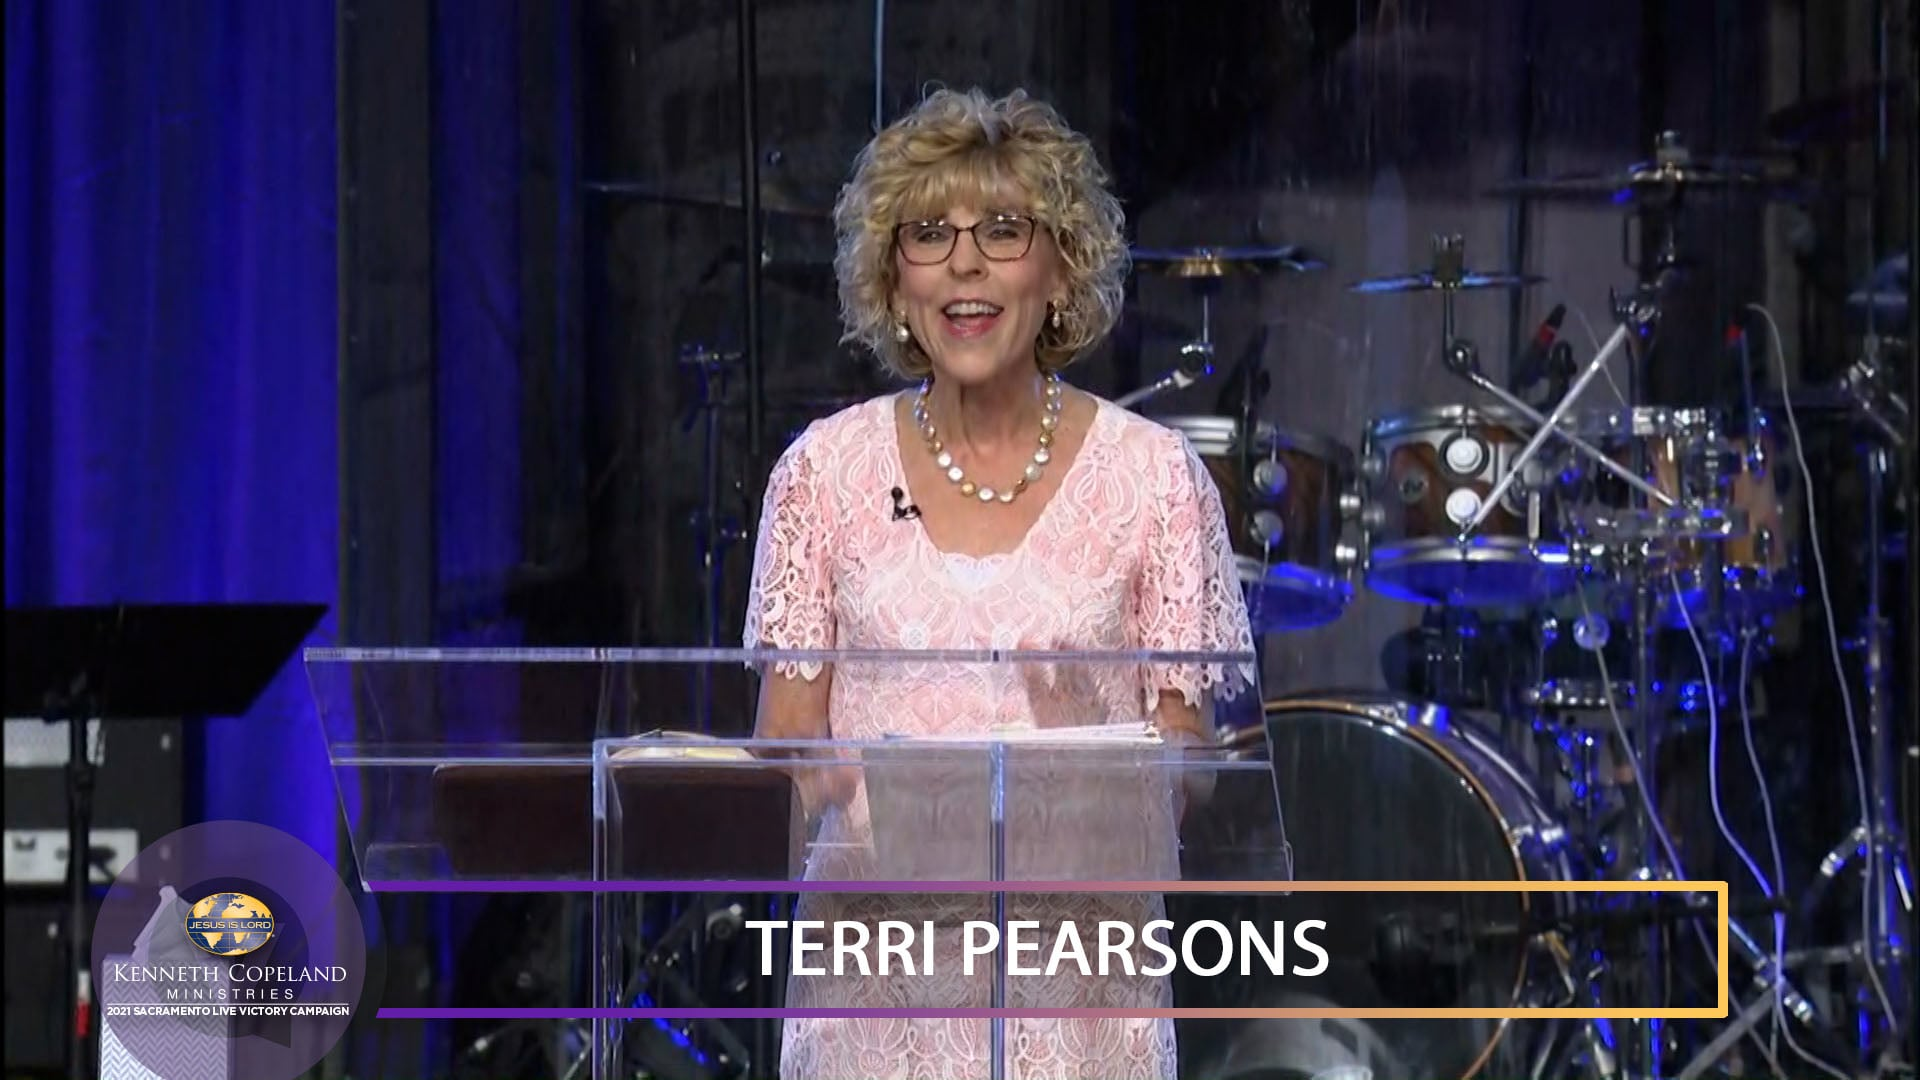 Join Terri Copeland Pearsons at the 2021 Sacramento Victory Campaign. This is the victory that overcomes the world that is falling apart—our faith! Learn how to aim your faith and your prayers. Hear the two sides of prayer and how it takes both to bring the will of God to pass. Prayer is rooted in love!